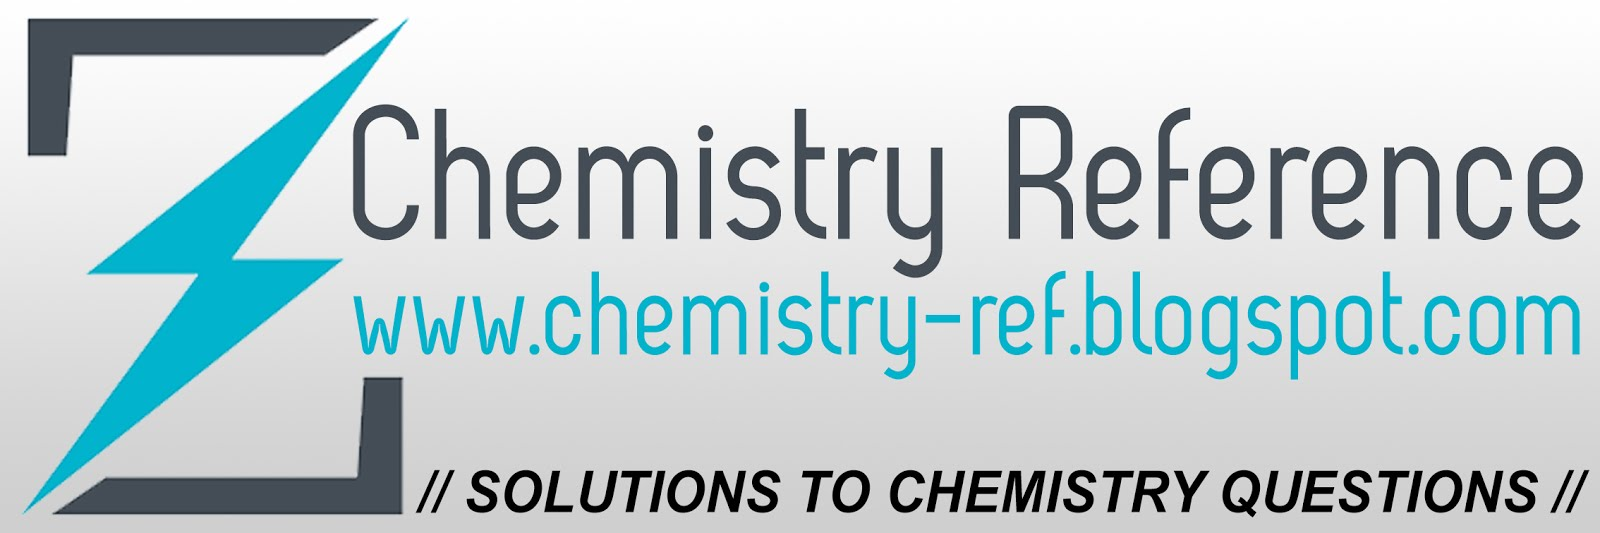 Chemistry Reference - Solutions to Questions